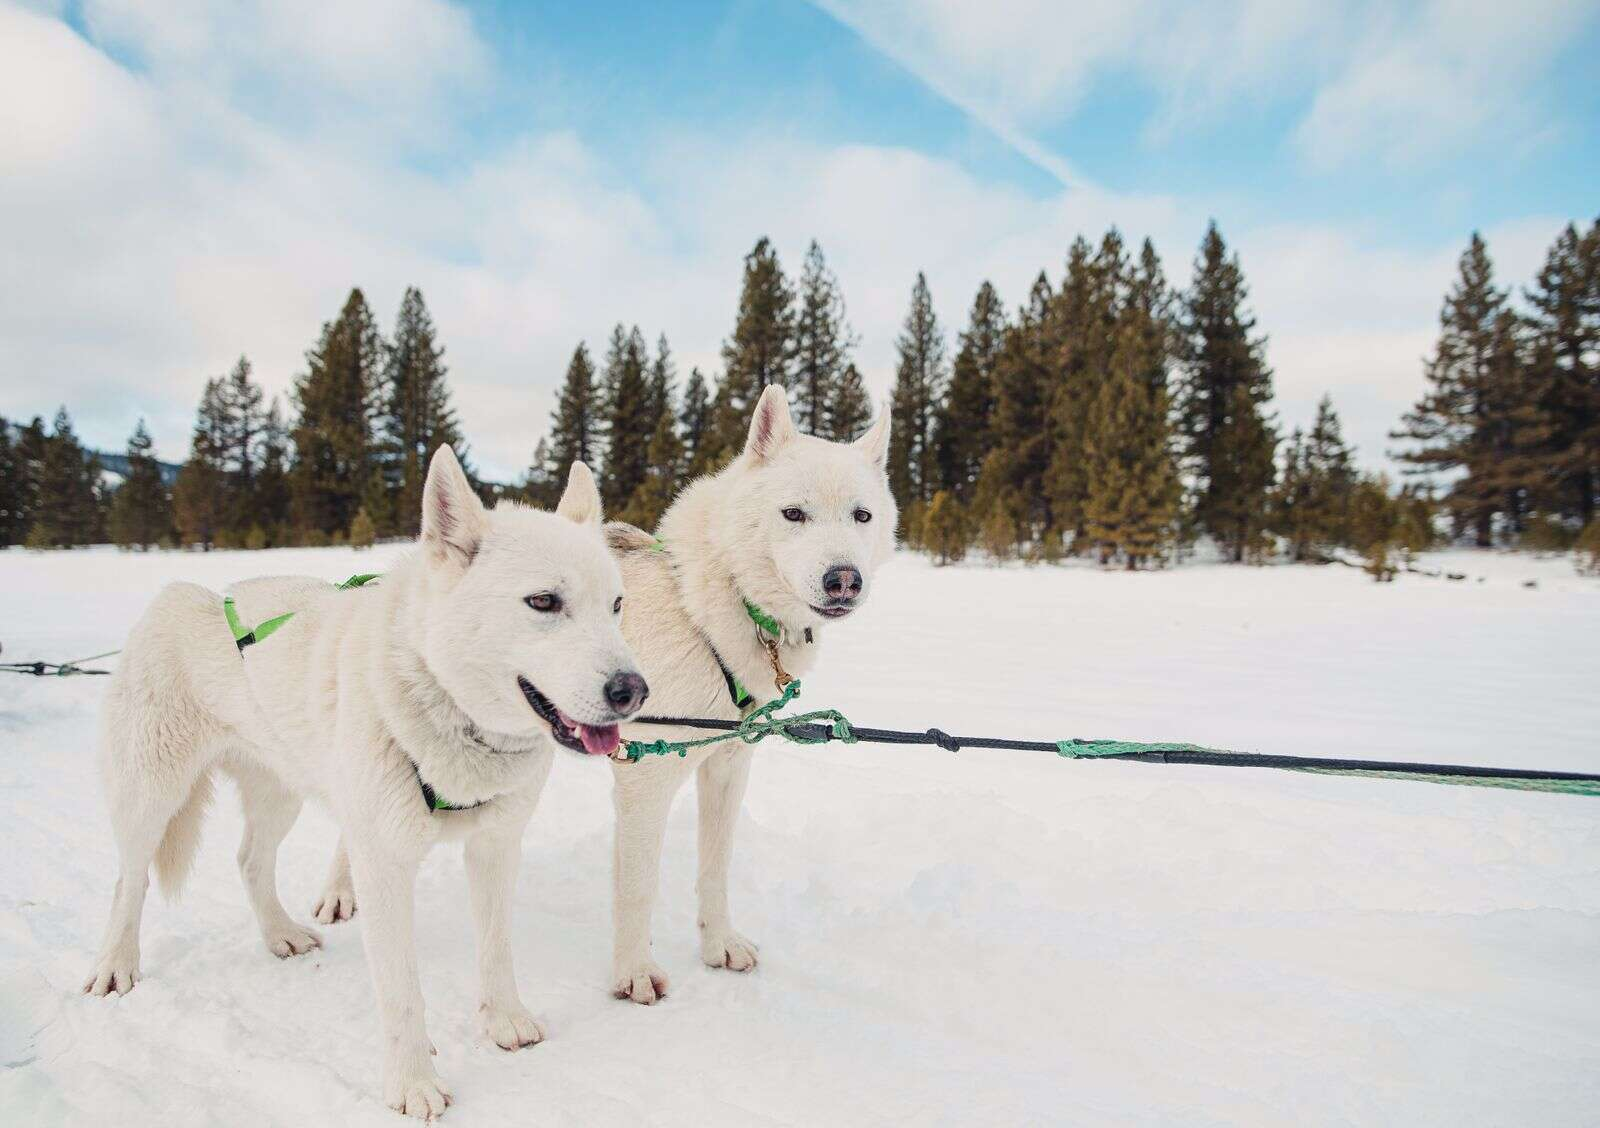 A team consists of a lead dog or dogs (there can be two lead dogs at a time) which are in front, team dogs in the middle and wheel dogs that are directly in front of the sled which help pull the sled out from and around corners or trees.